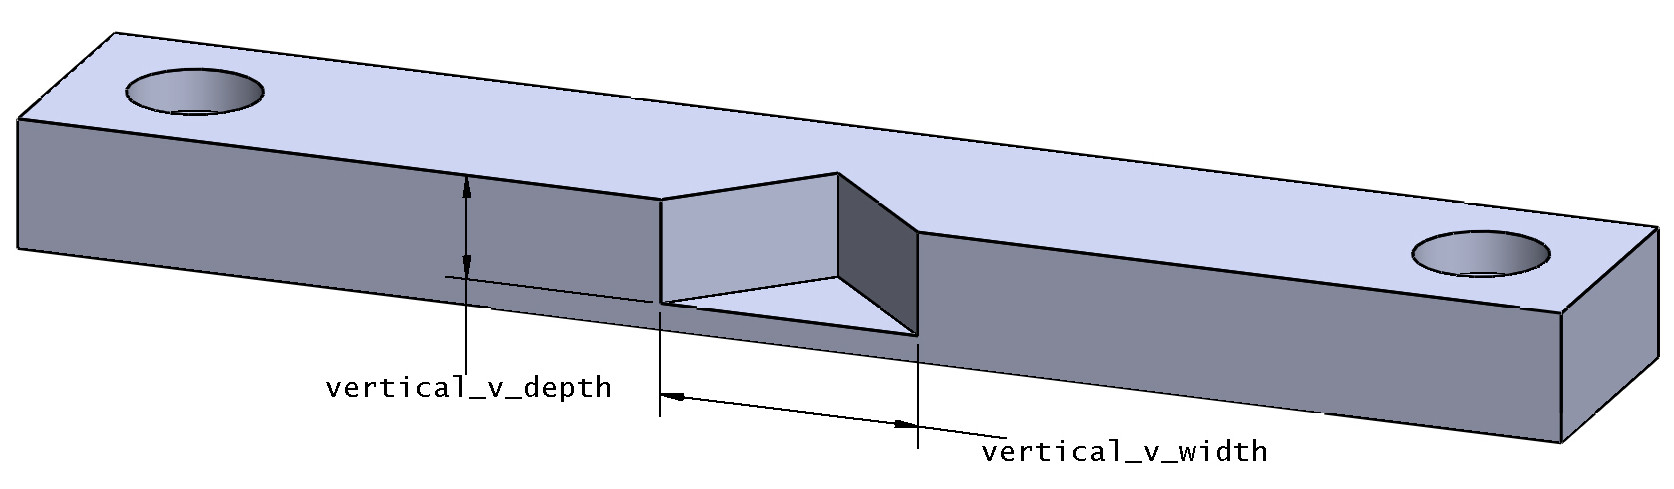 Vertical v-groove drawing